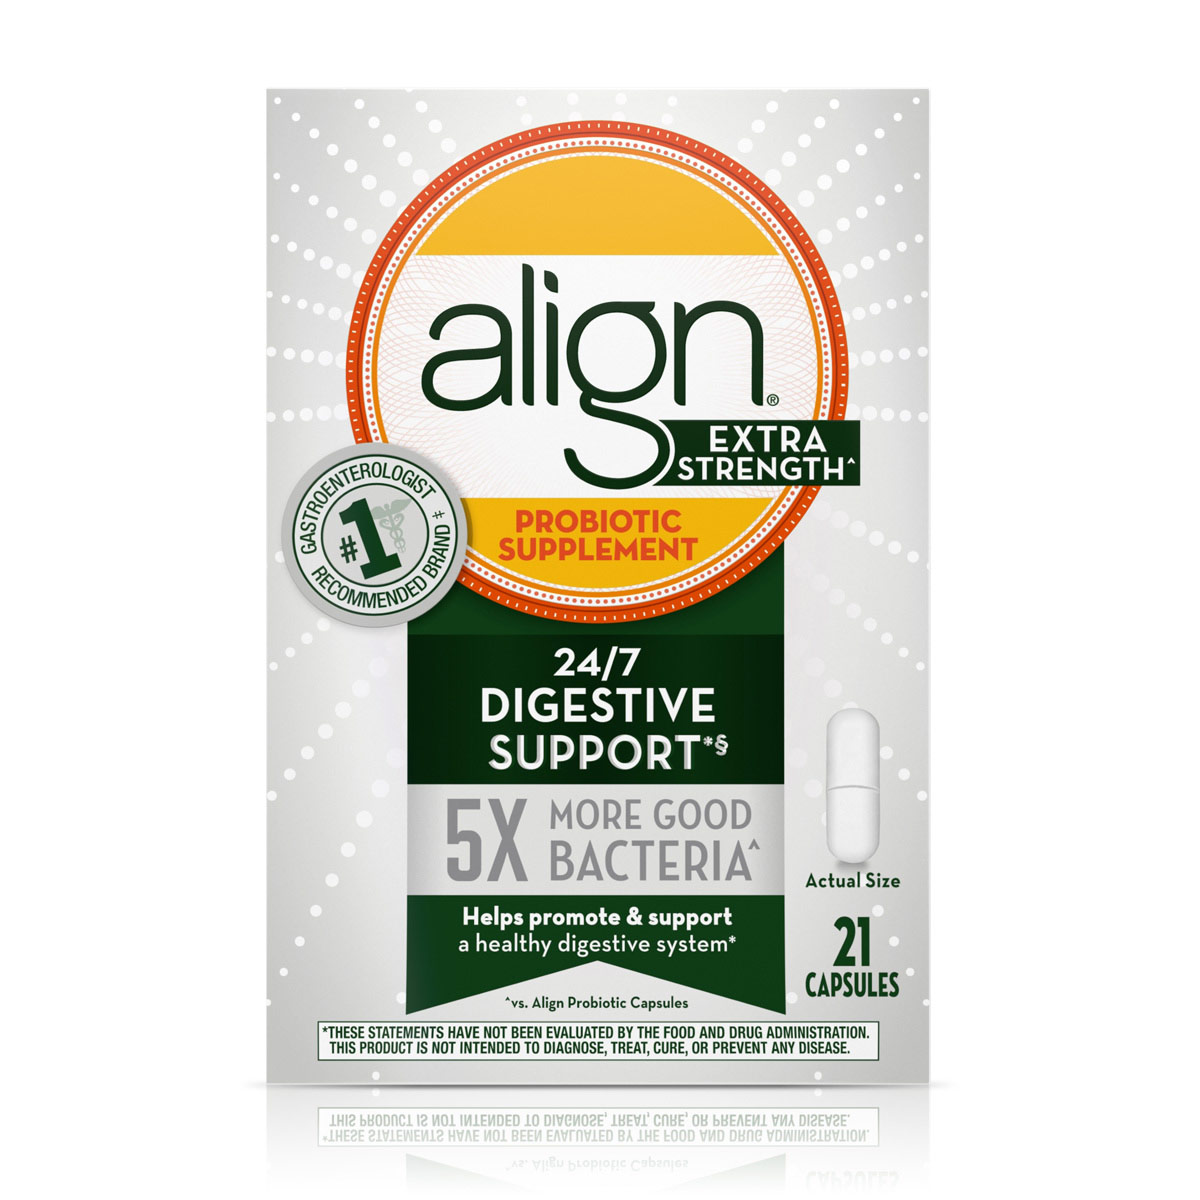 ALIGN EXTRA STRENGTH^ PROBIOTIC SUPPLEMENT